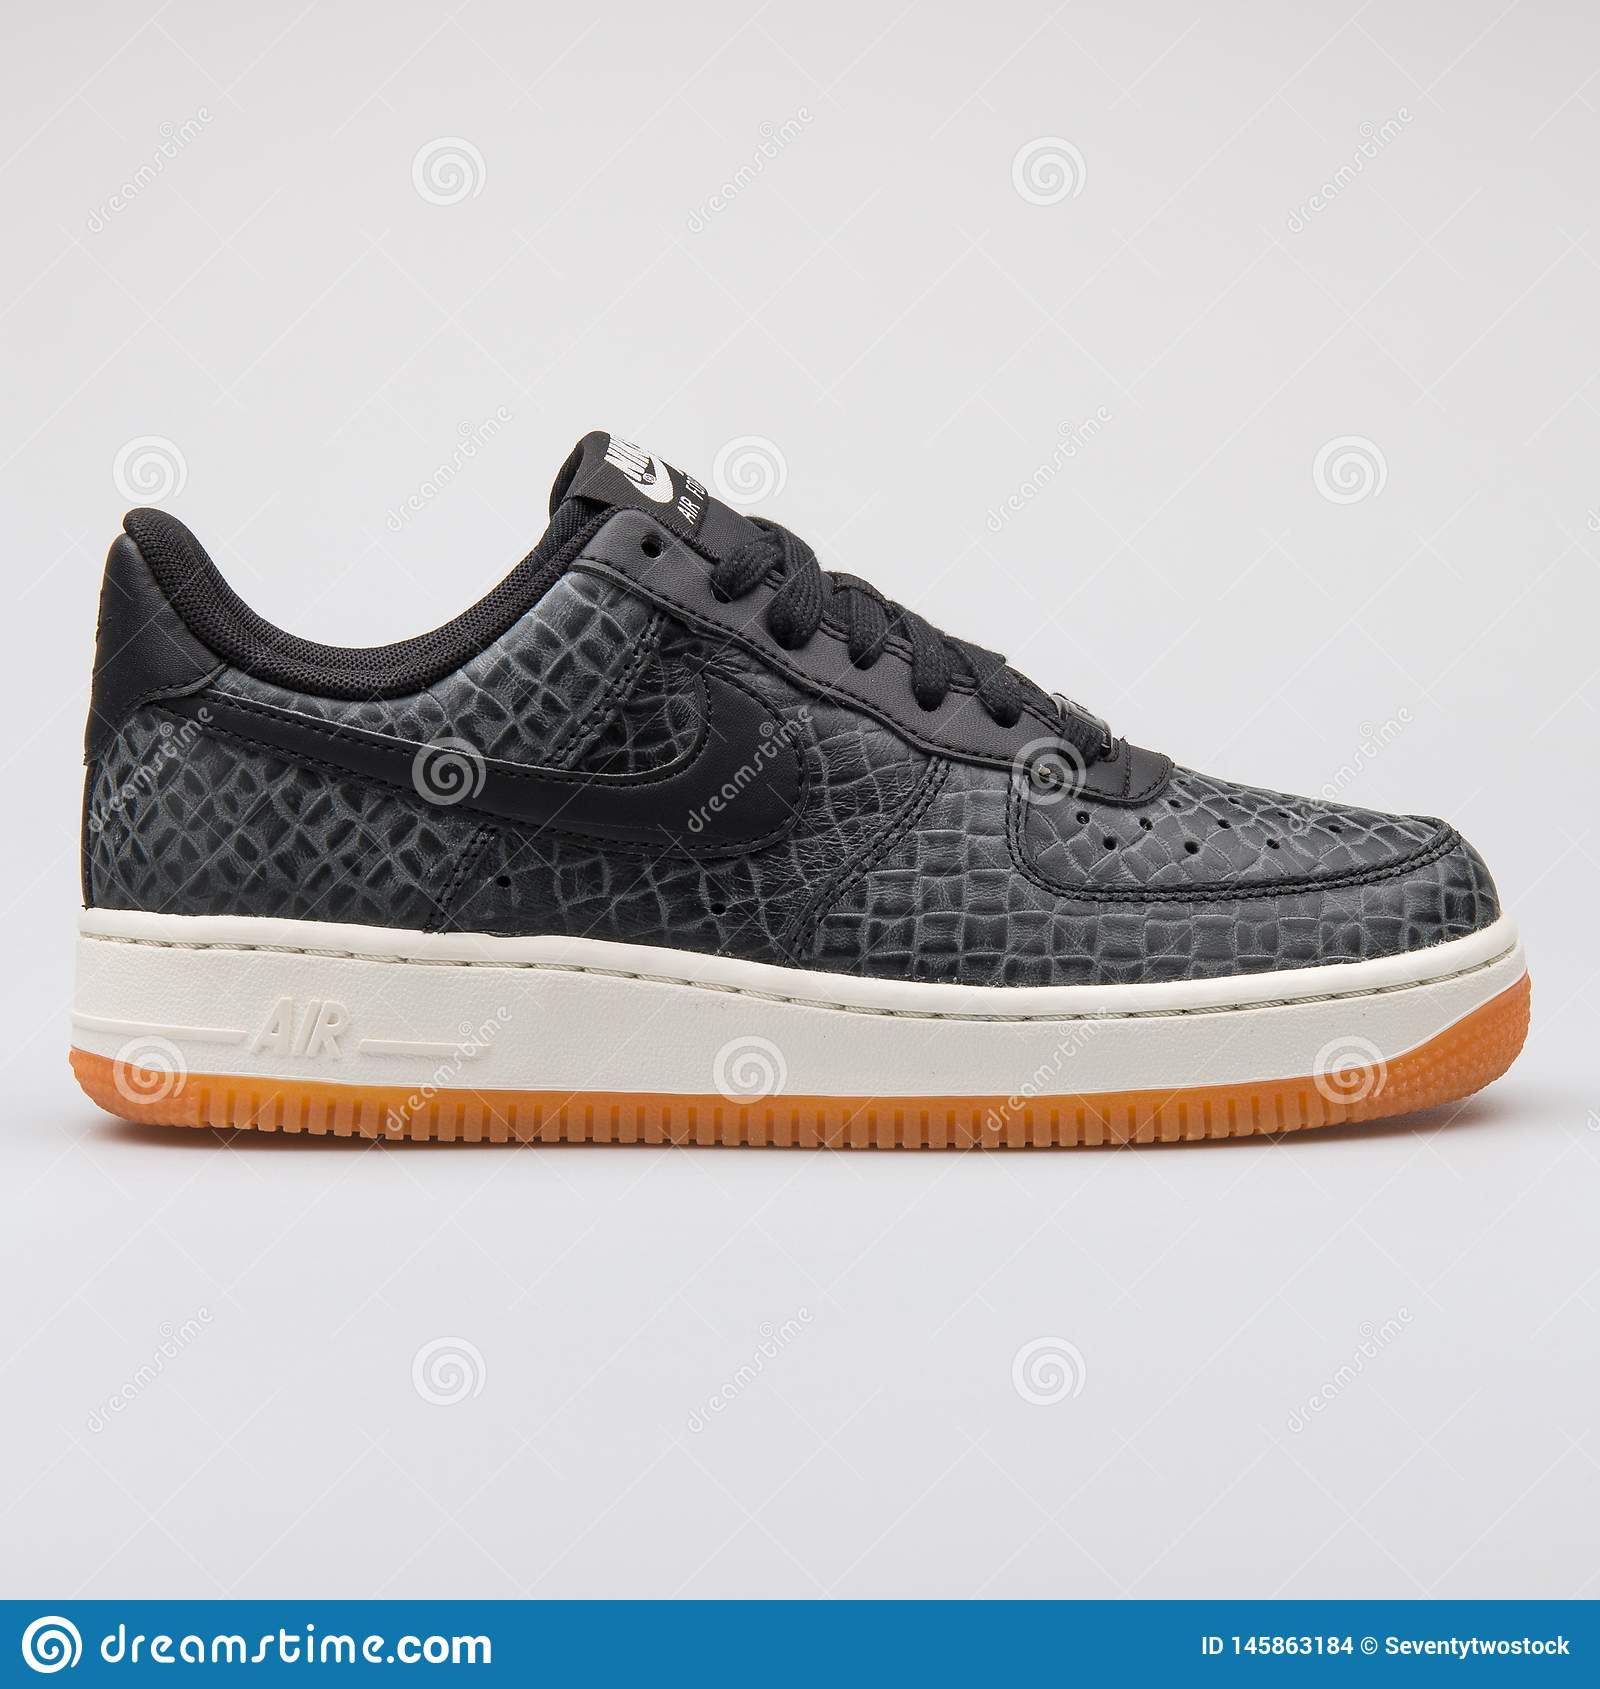 7bfcfa3f Nike Air Force 1 07 Premium Black Sneaker Editorial Stock Image ...